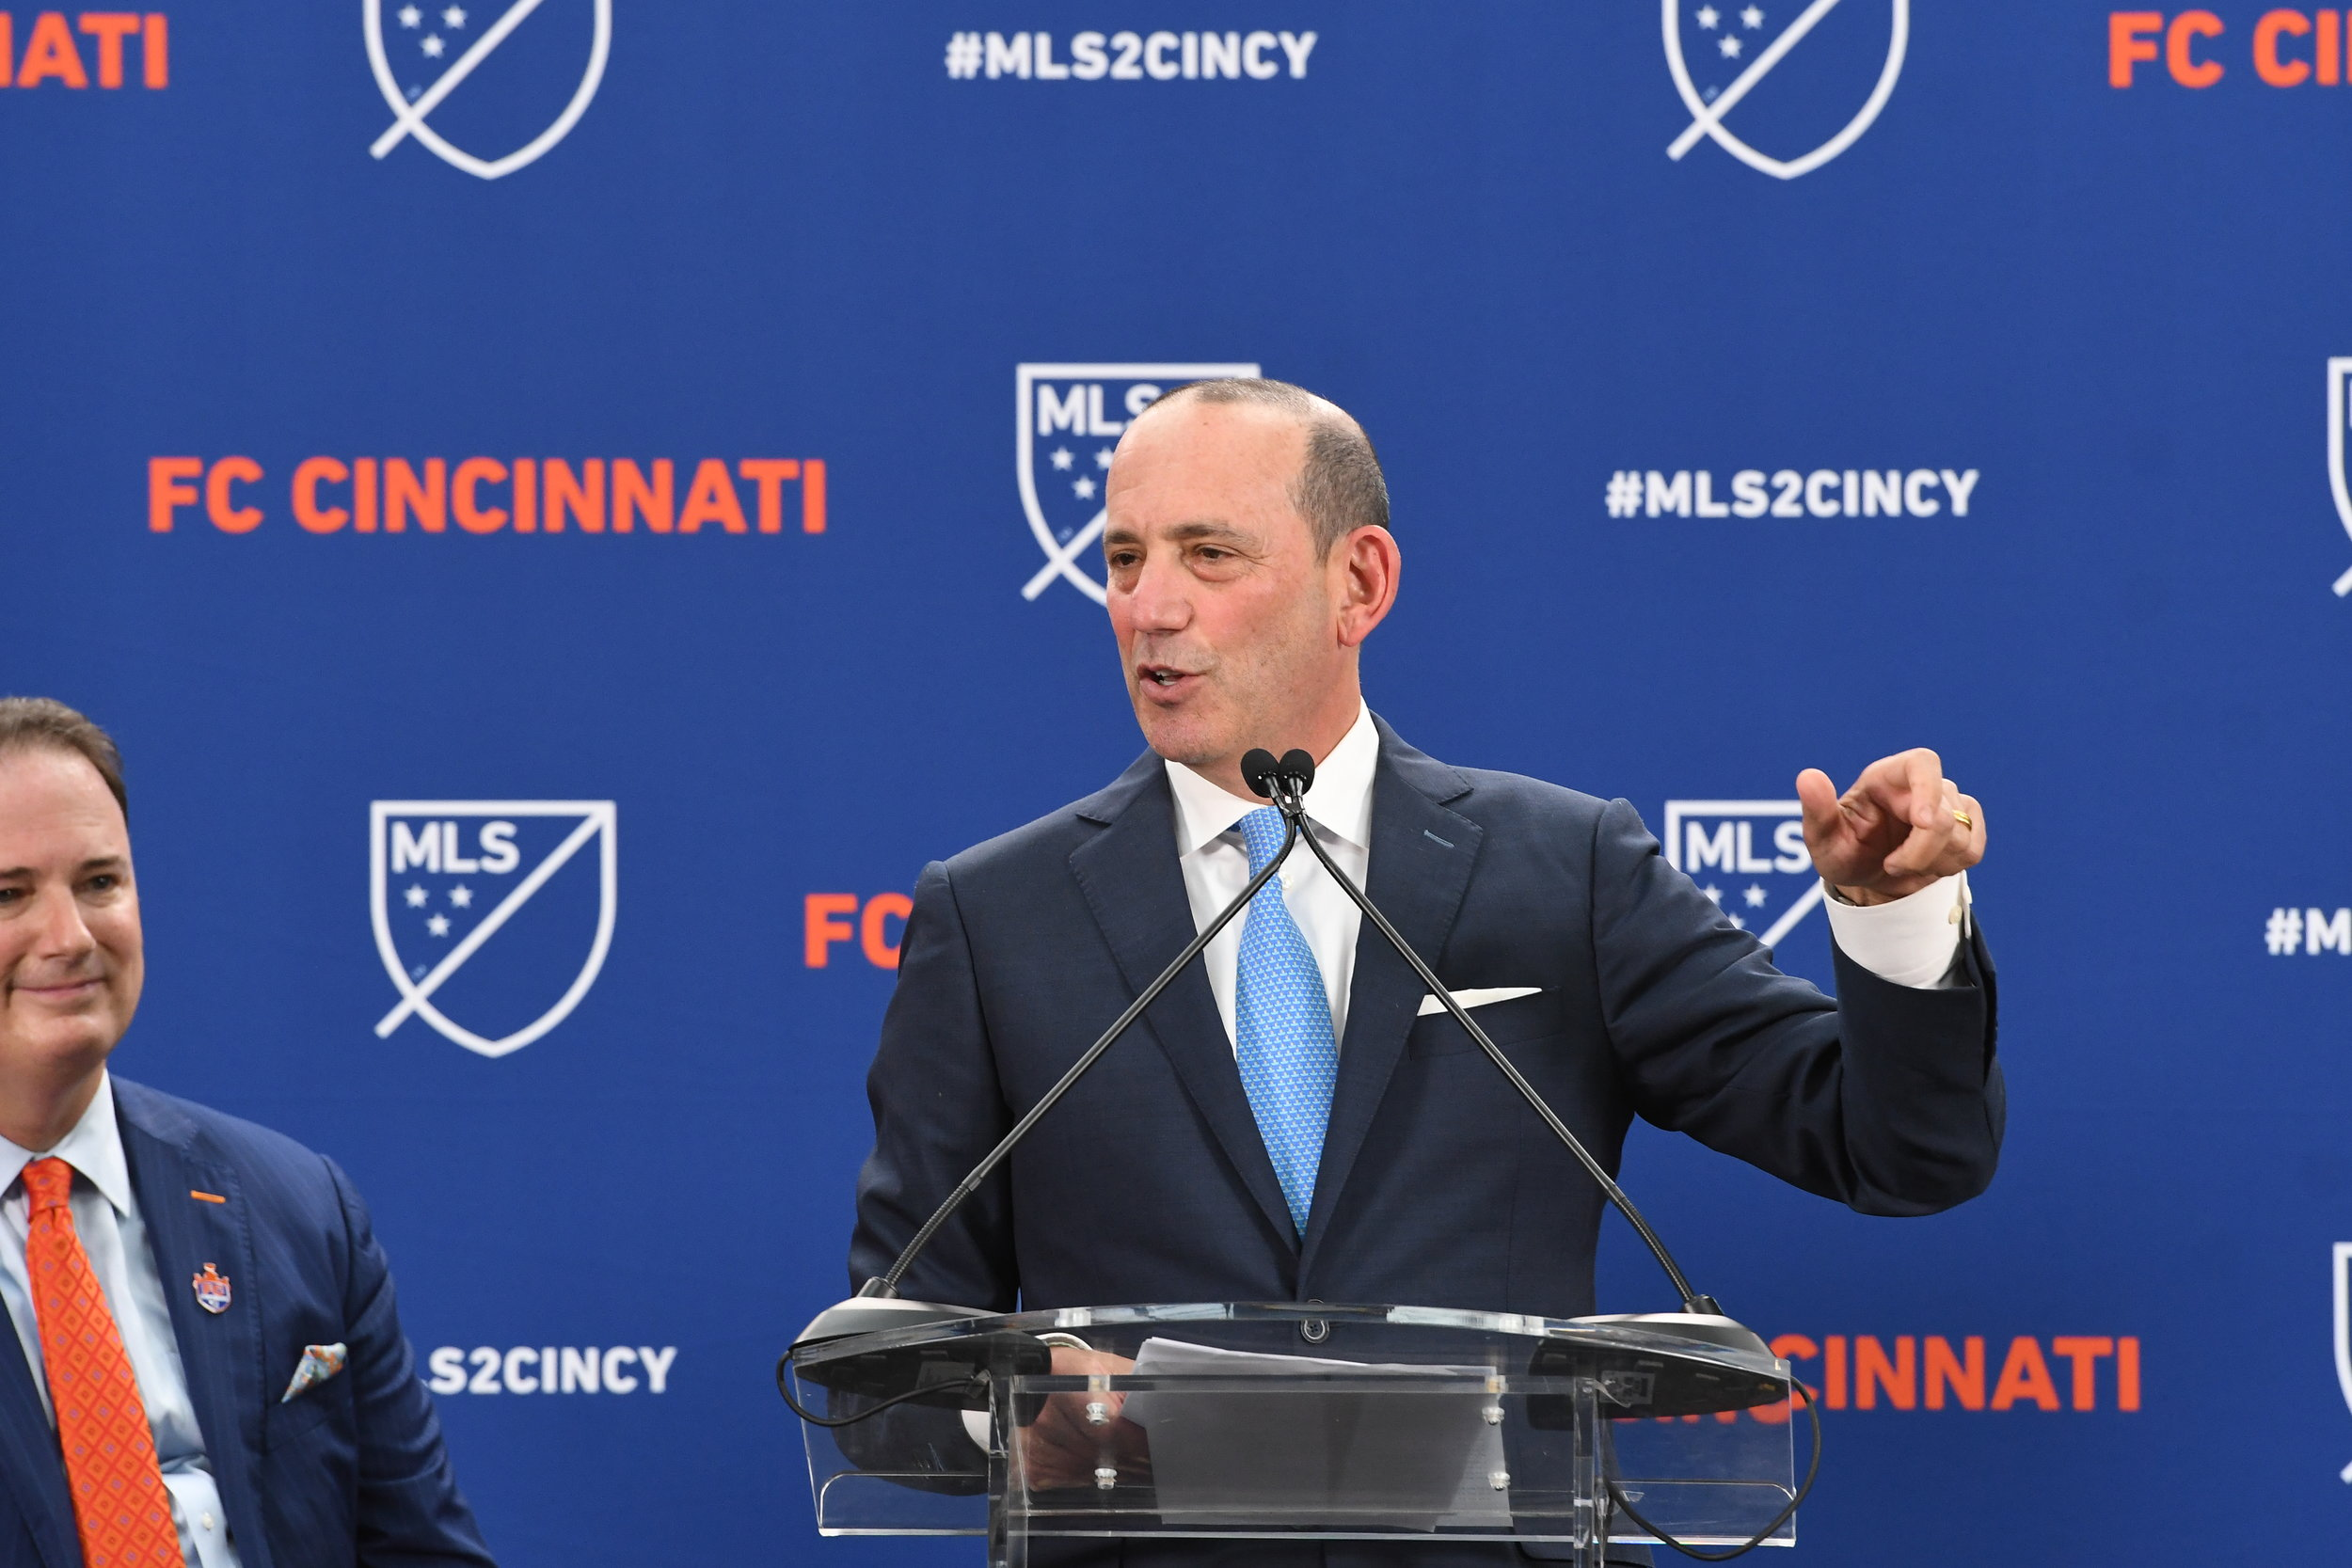 MLS Commissioner Don Garber (credit Major League Soccer).